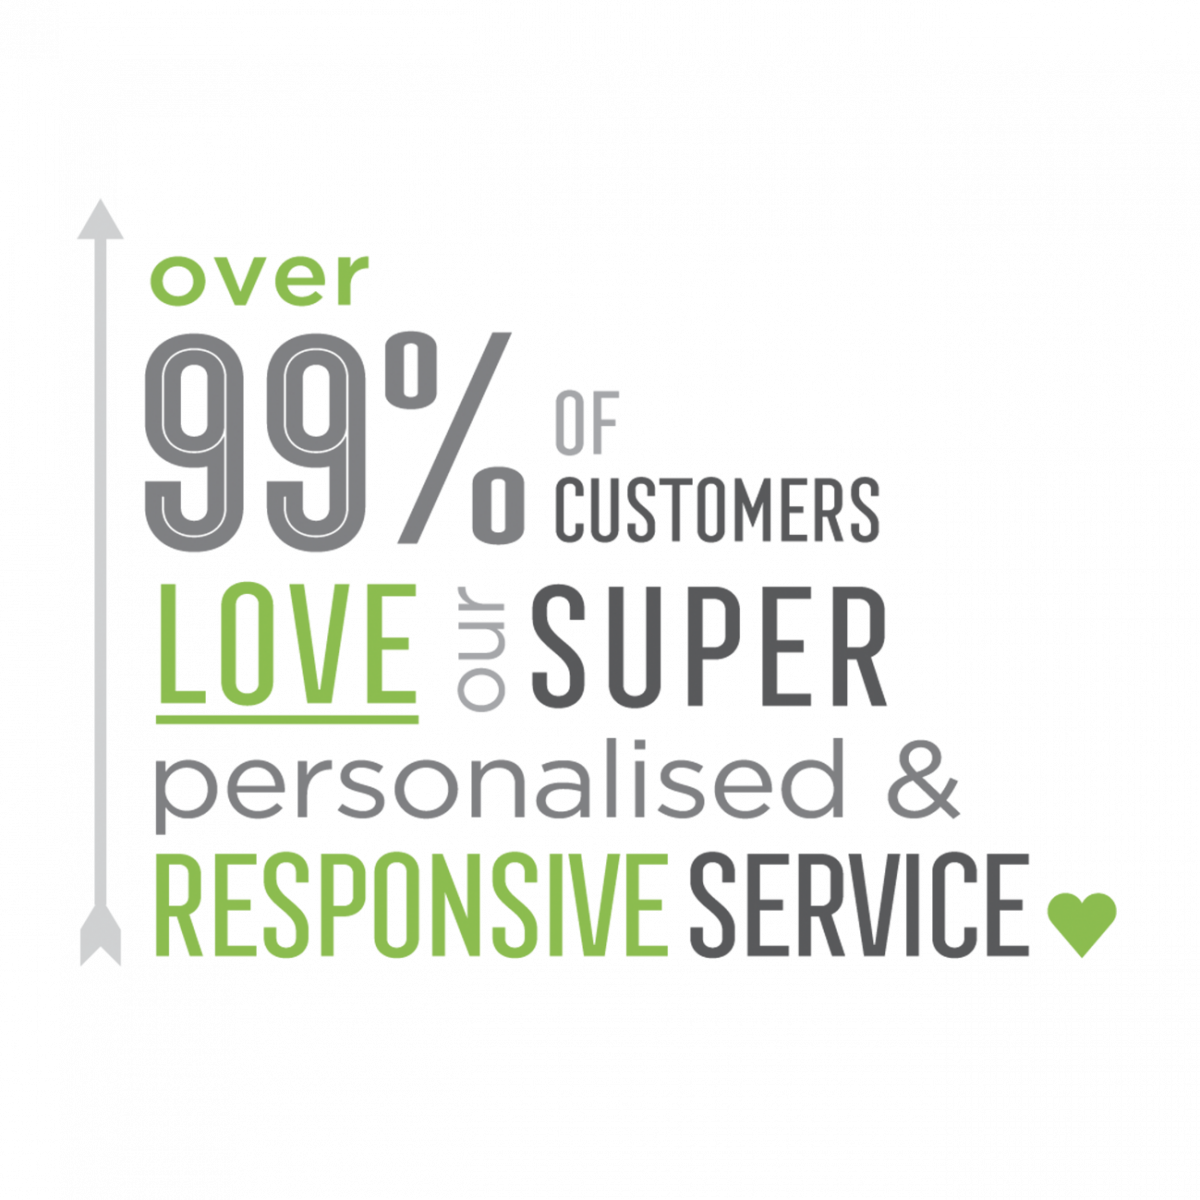 99% of Customers Love Our Service!